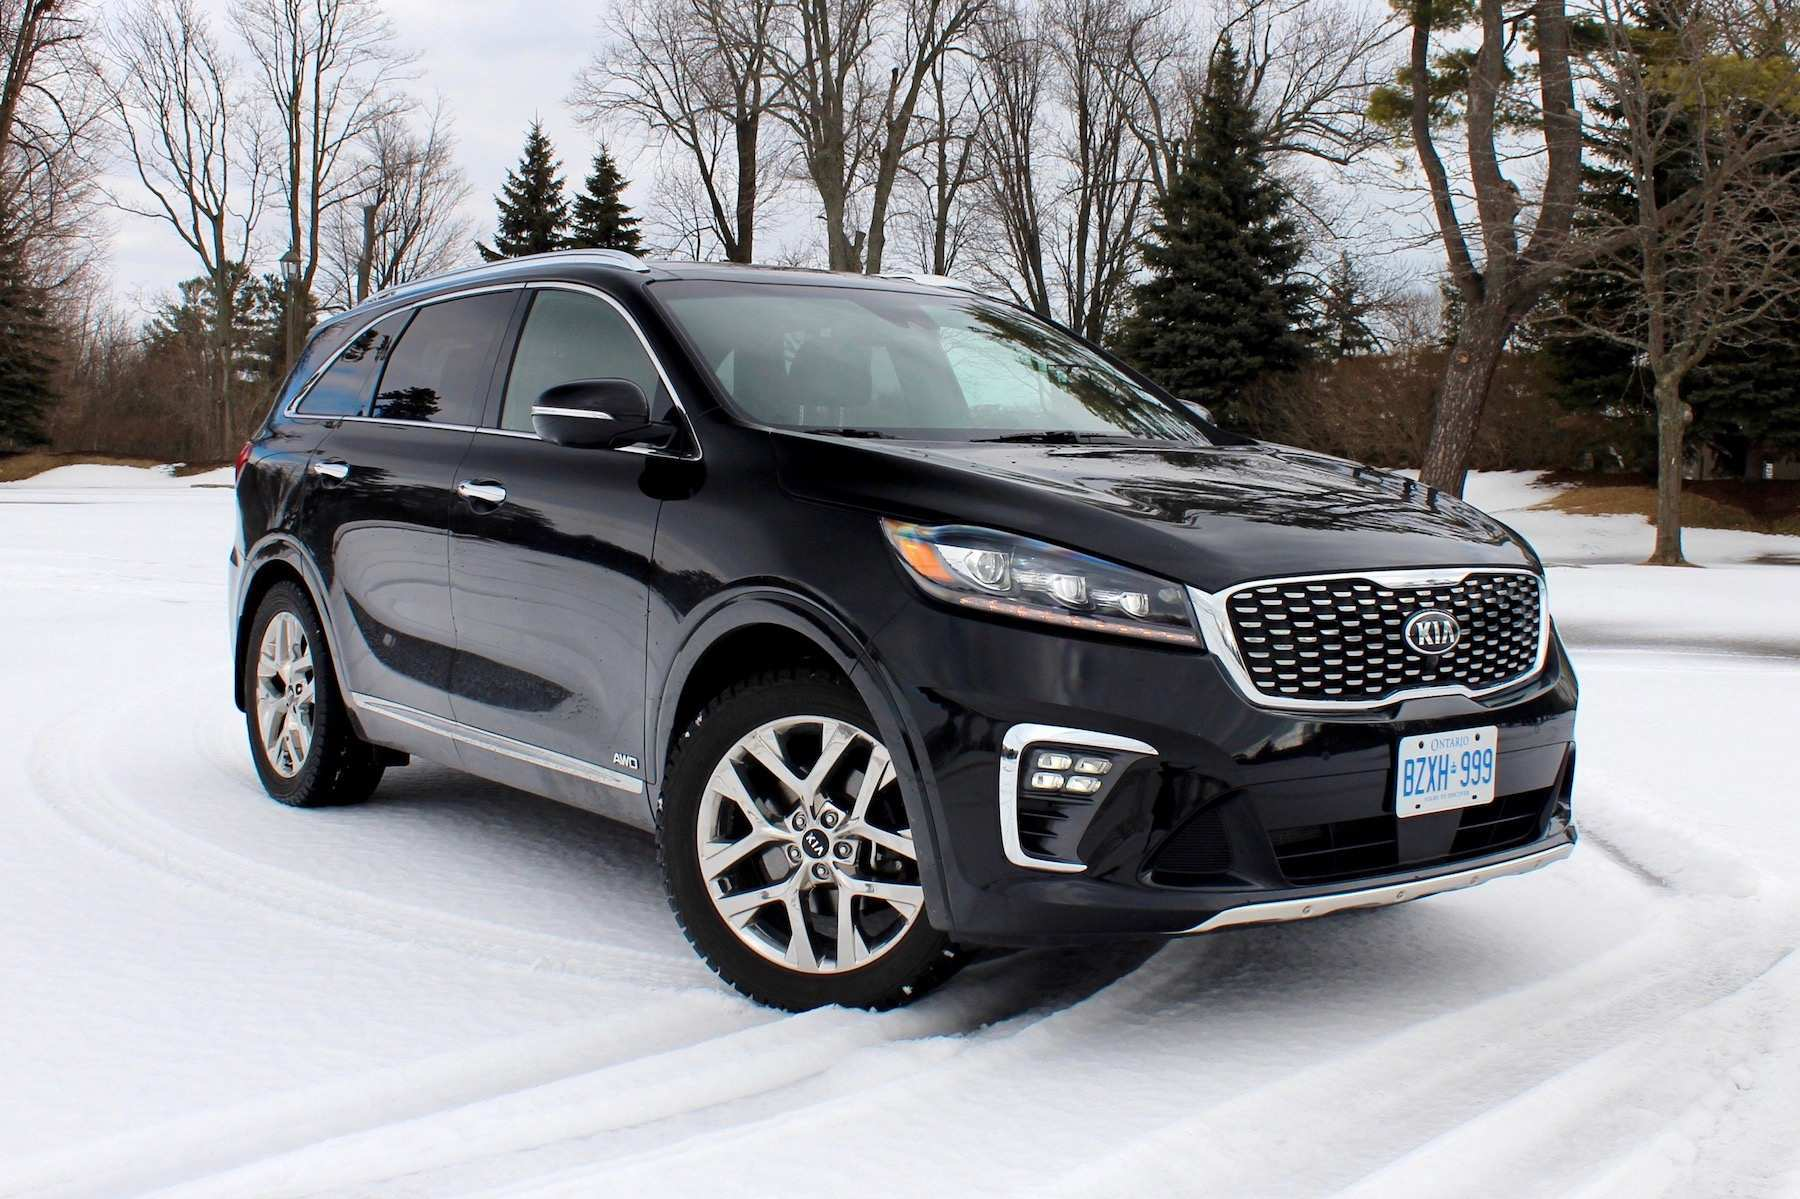 84 The 2019 Kia Sorento Review Price And Review